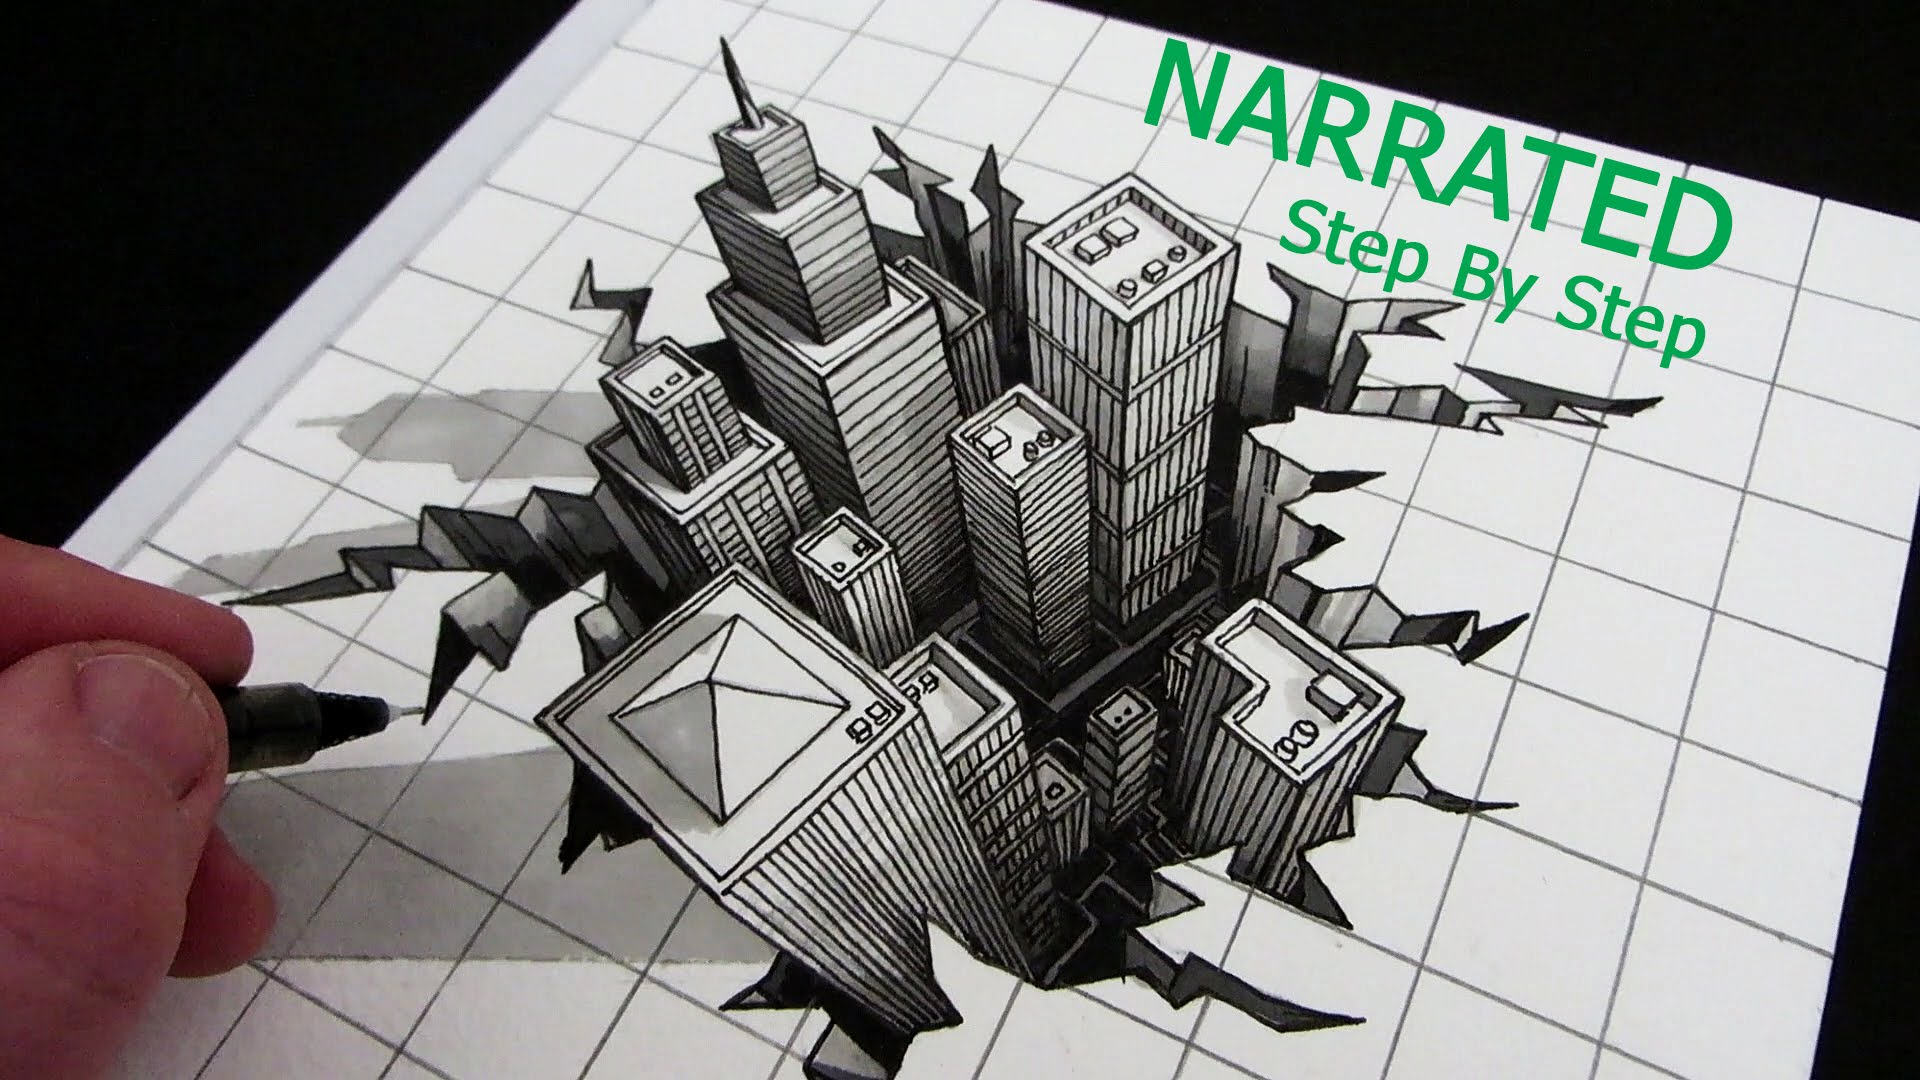 1920x1080 How To Draw A 3d City Optical Illusion Narrated Step By Step